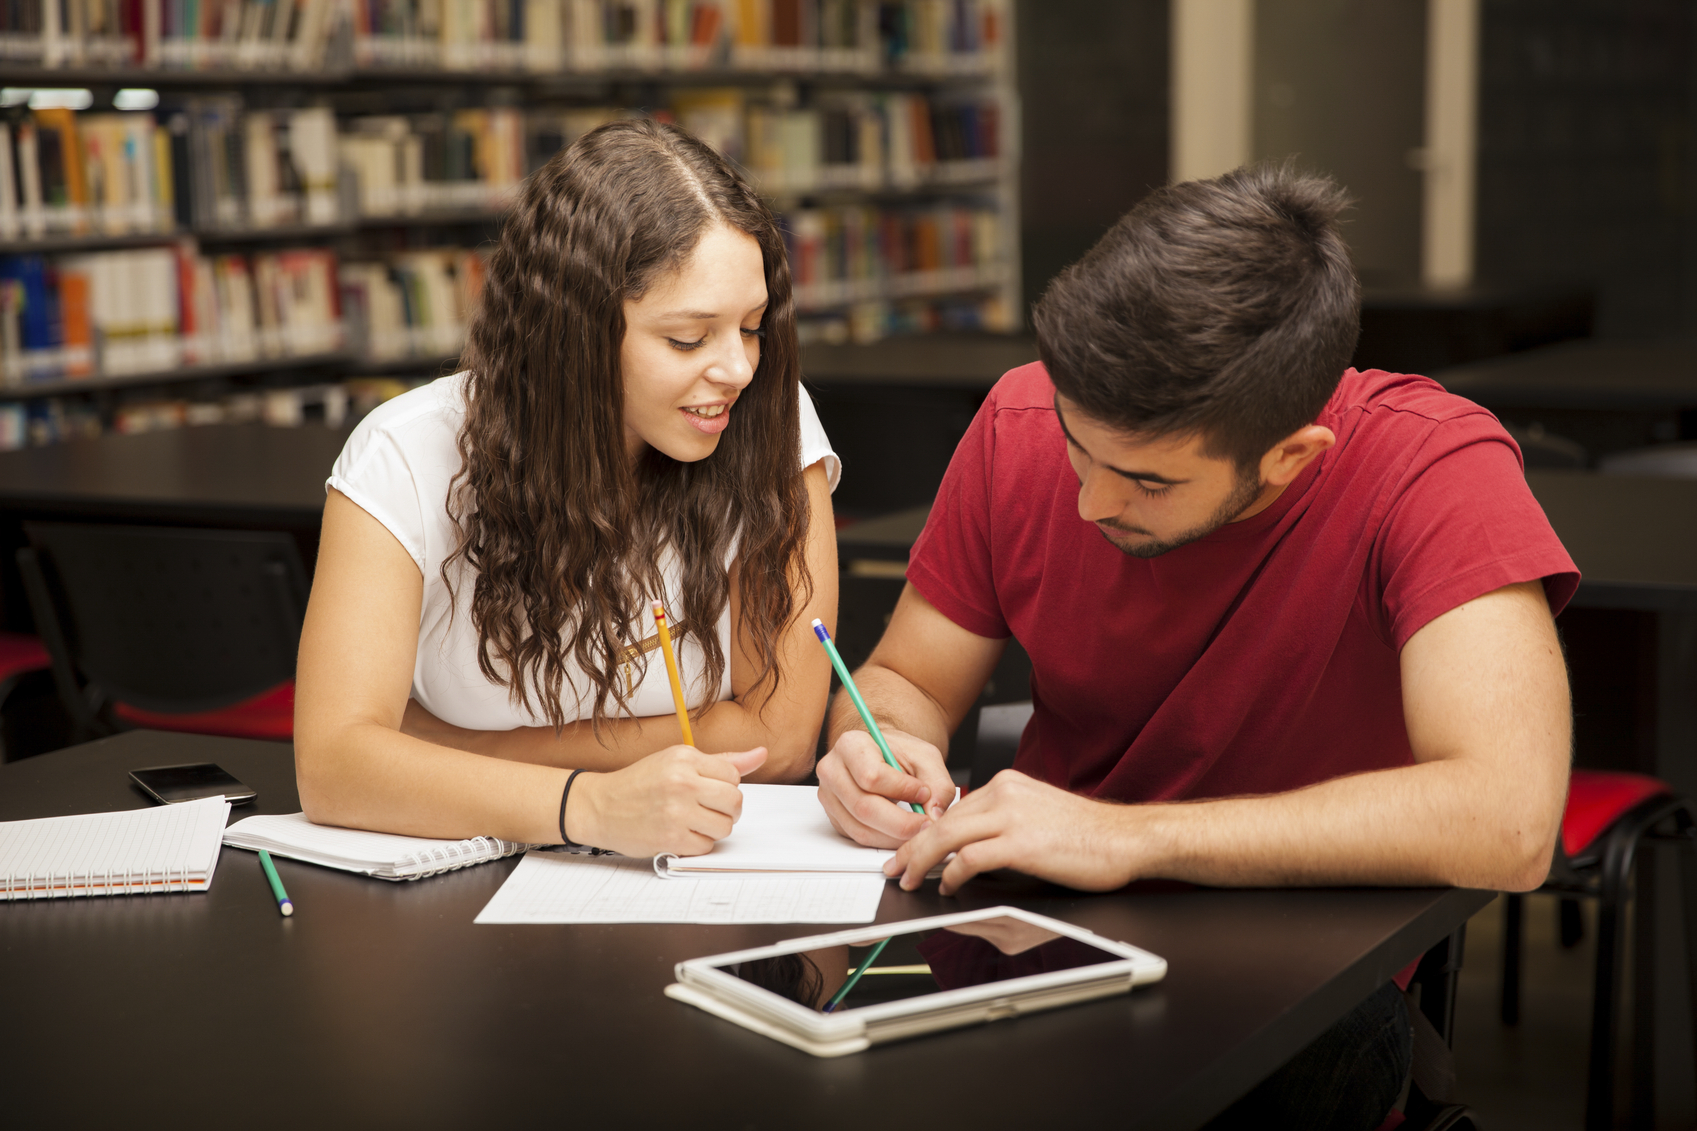 Colleges often help students on the spectrum find tutors image: antonio diaz